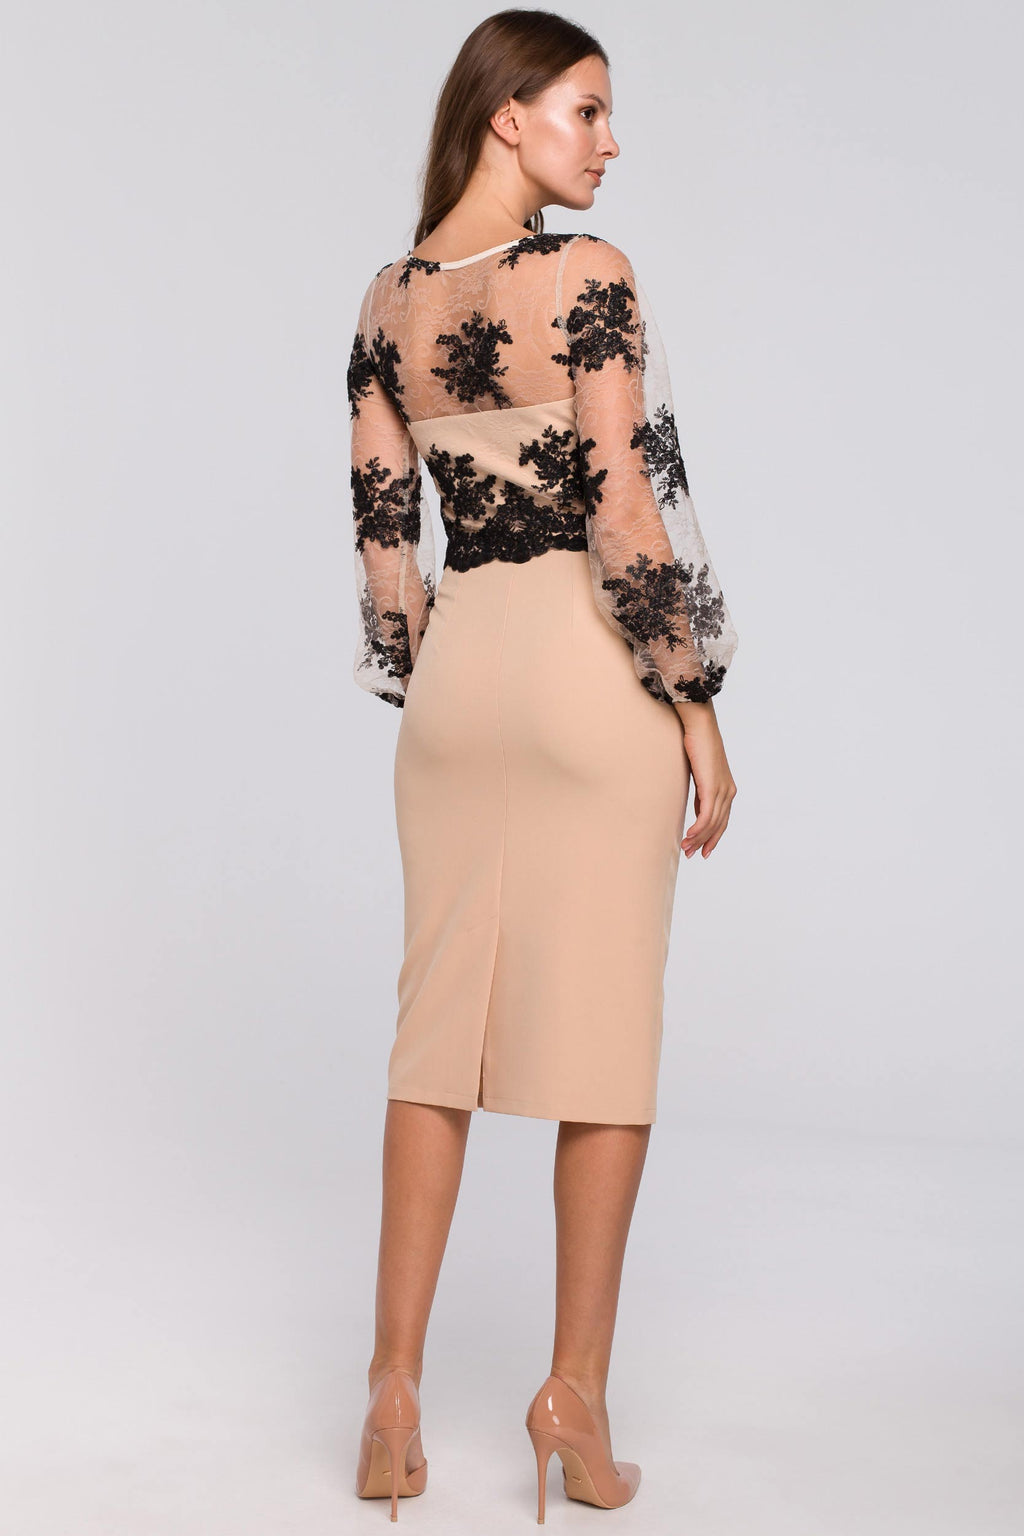 Beige Pencil Dress With Guipure Lace Overlay Top - So Chic Boutique